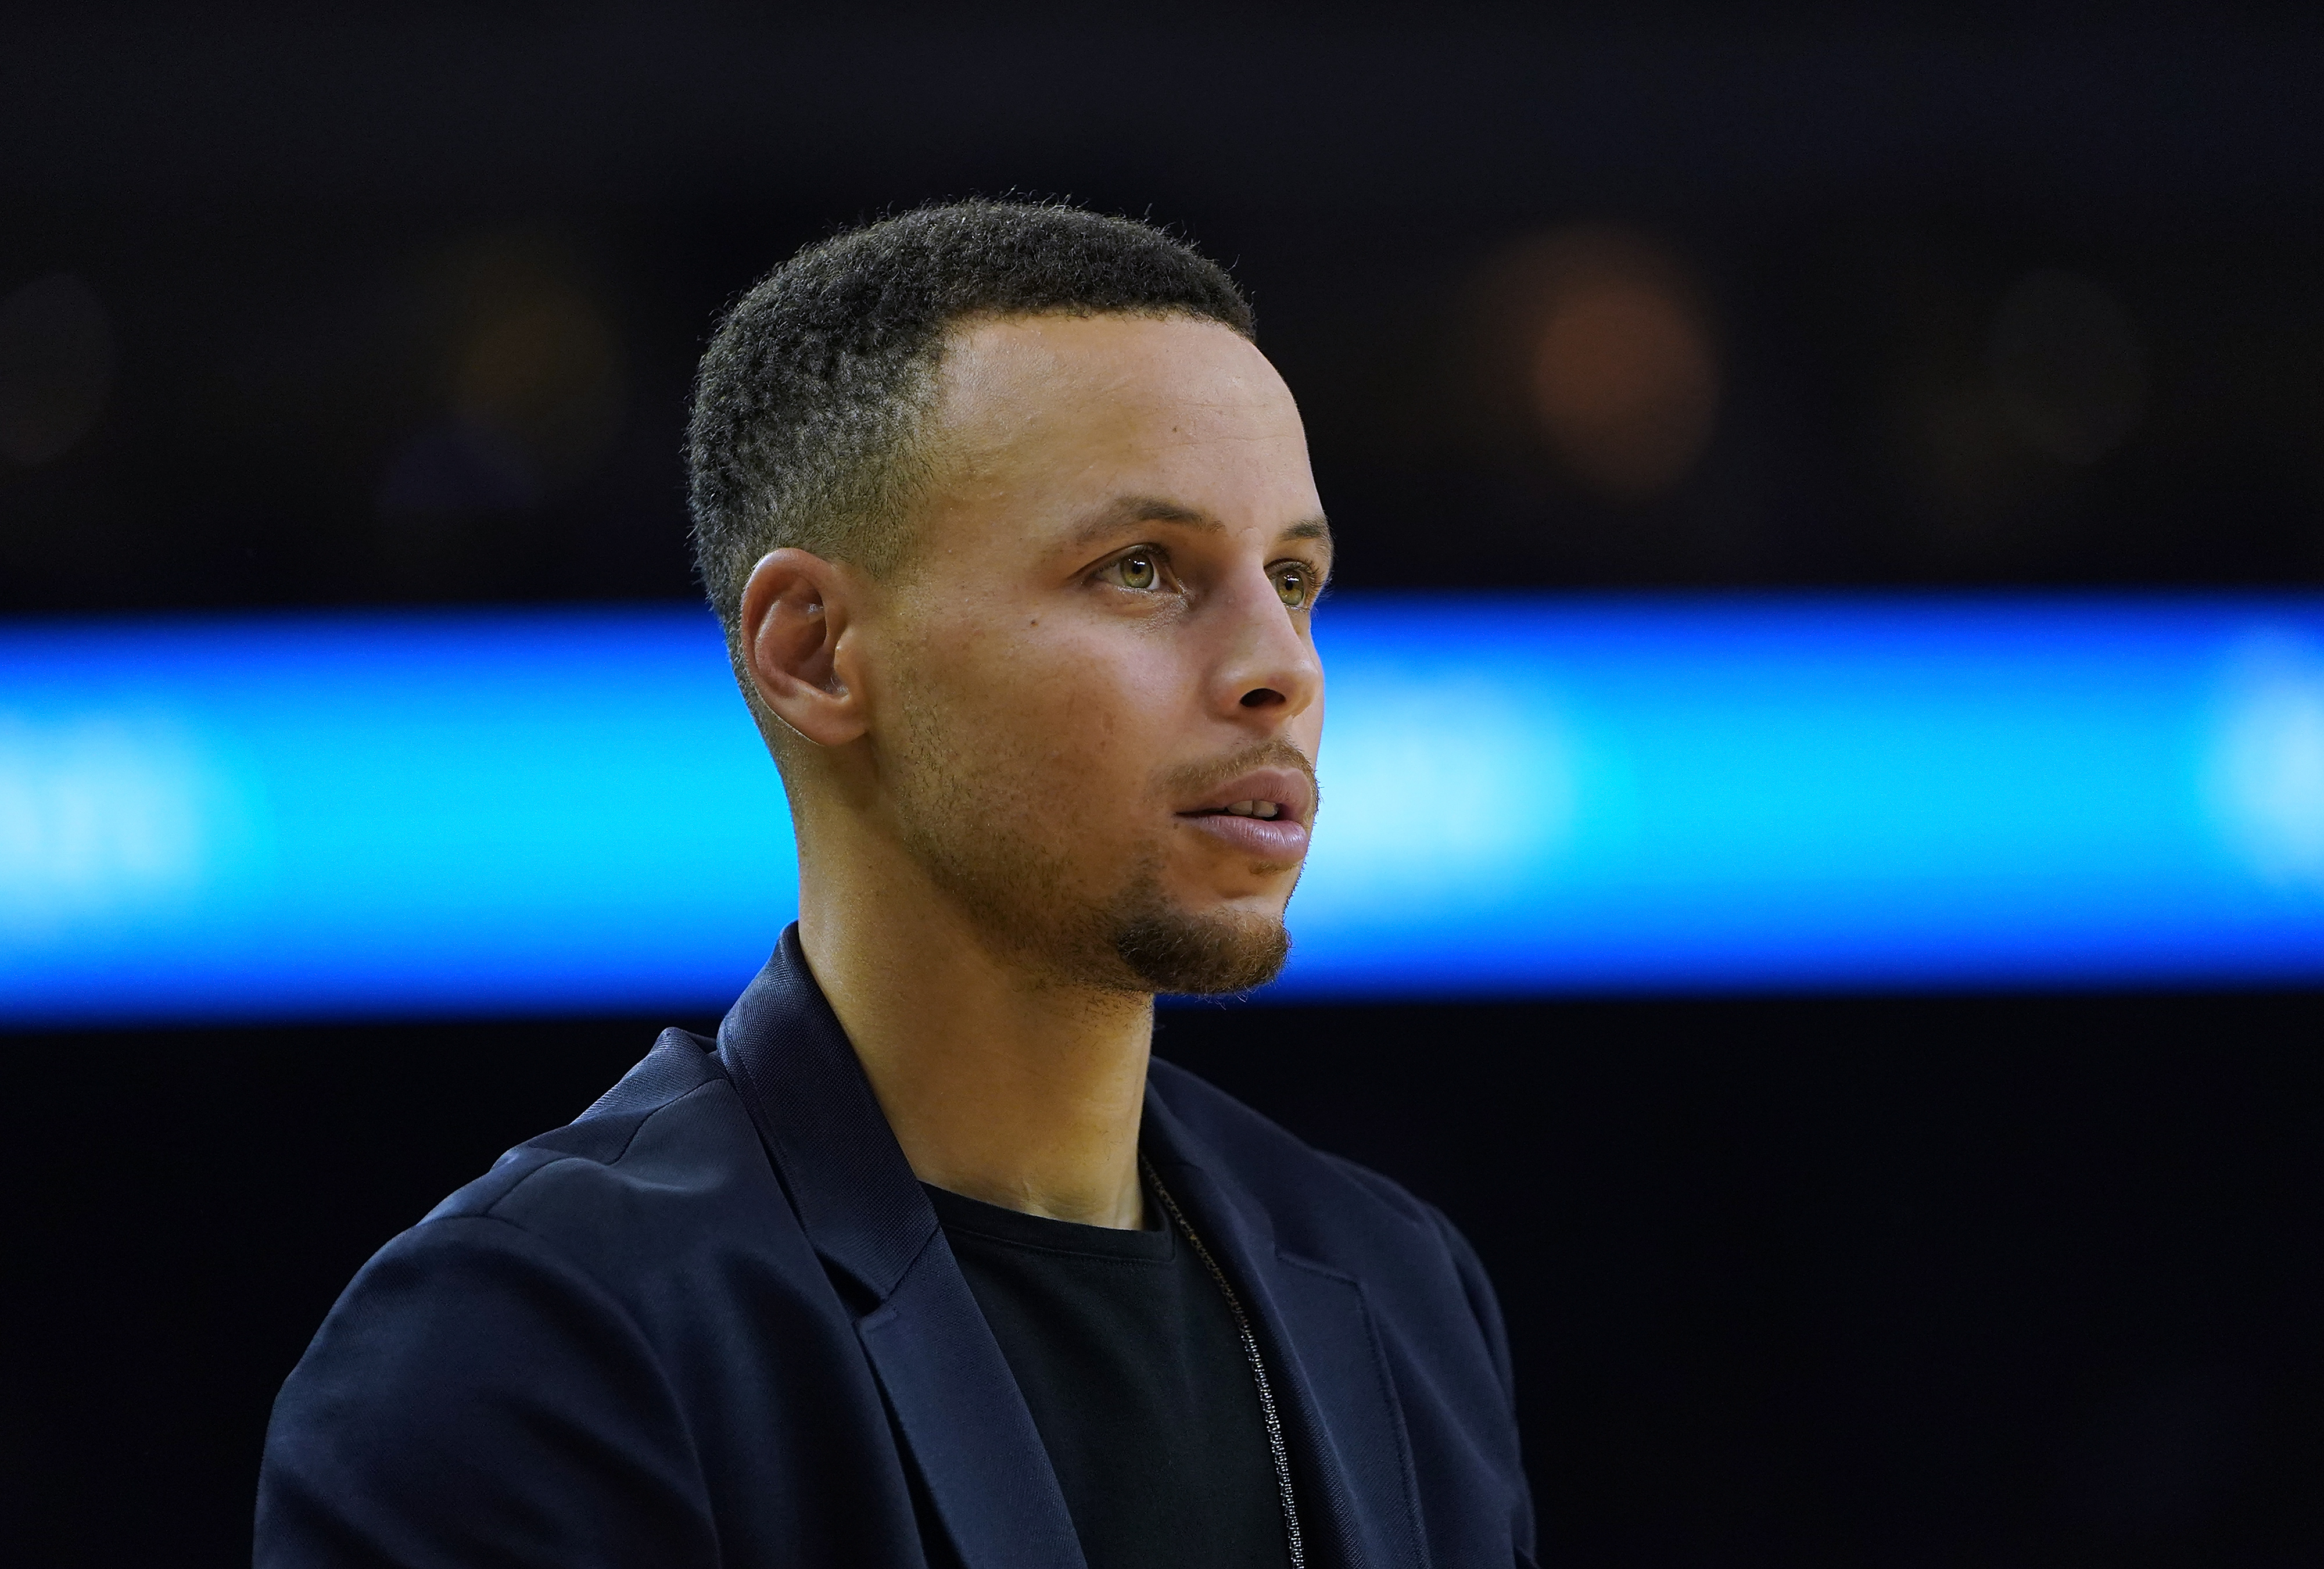 Stephen Curry involved in vehicle wreck in California